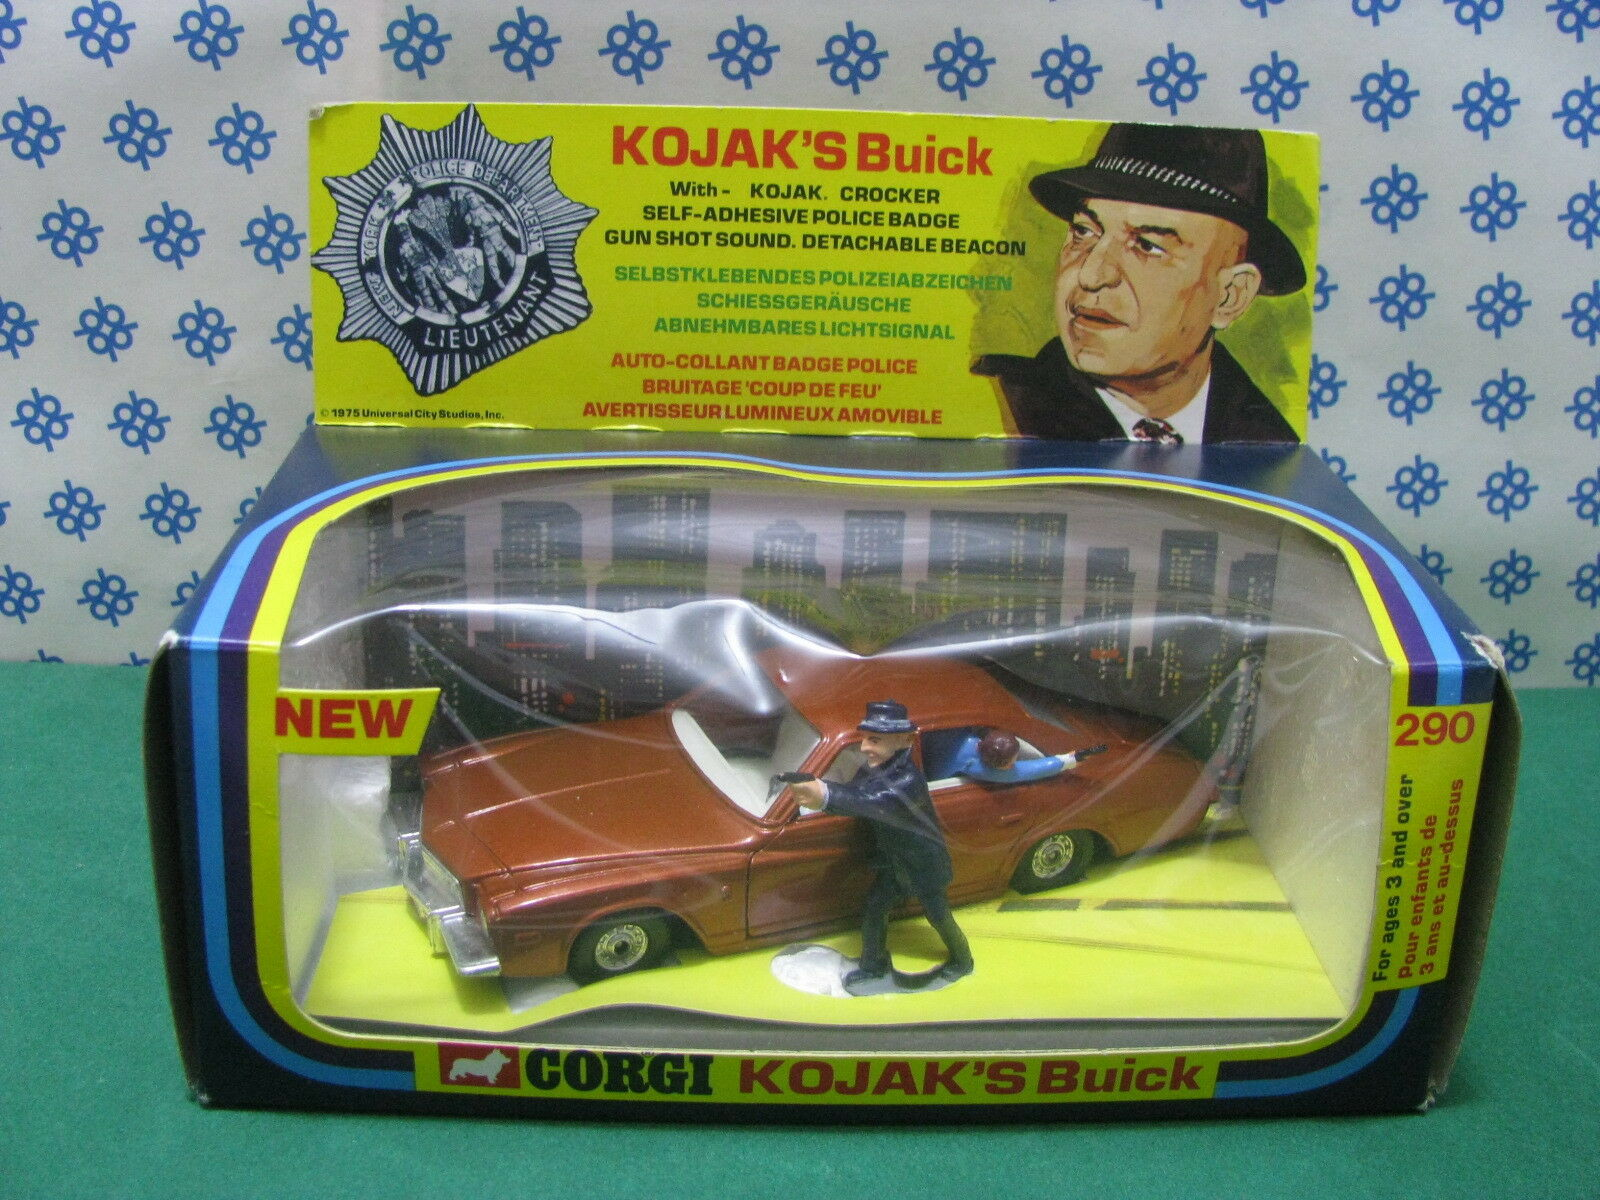 Vintage-Kojak 's Buick Regal TV Series-Corgi Toys 290 Superbe Menta